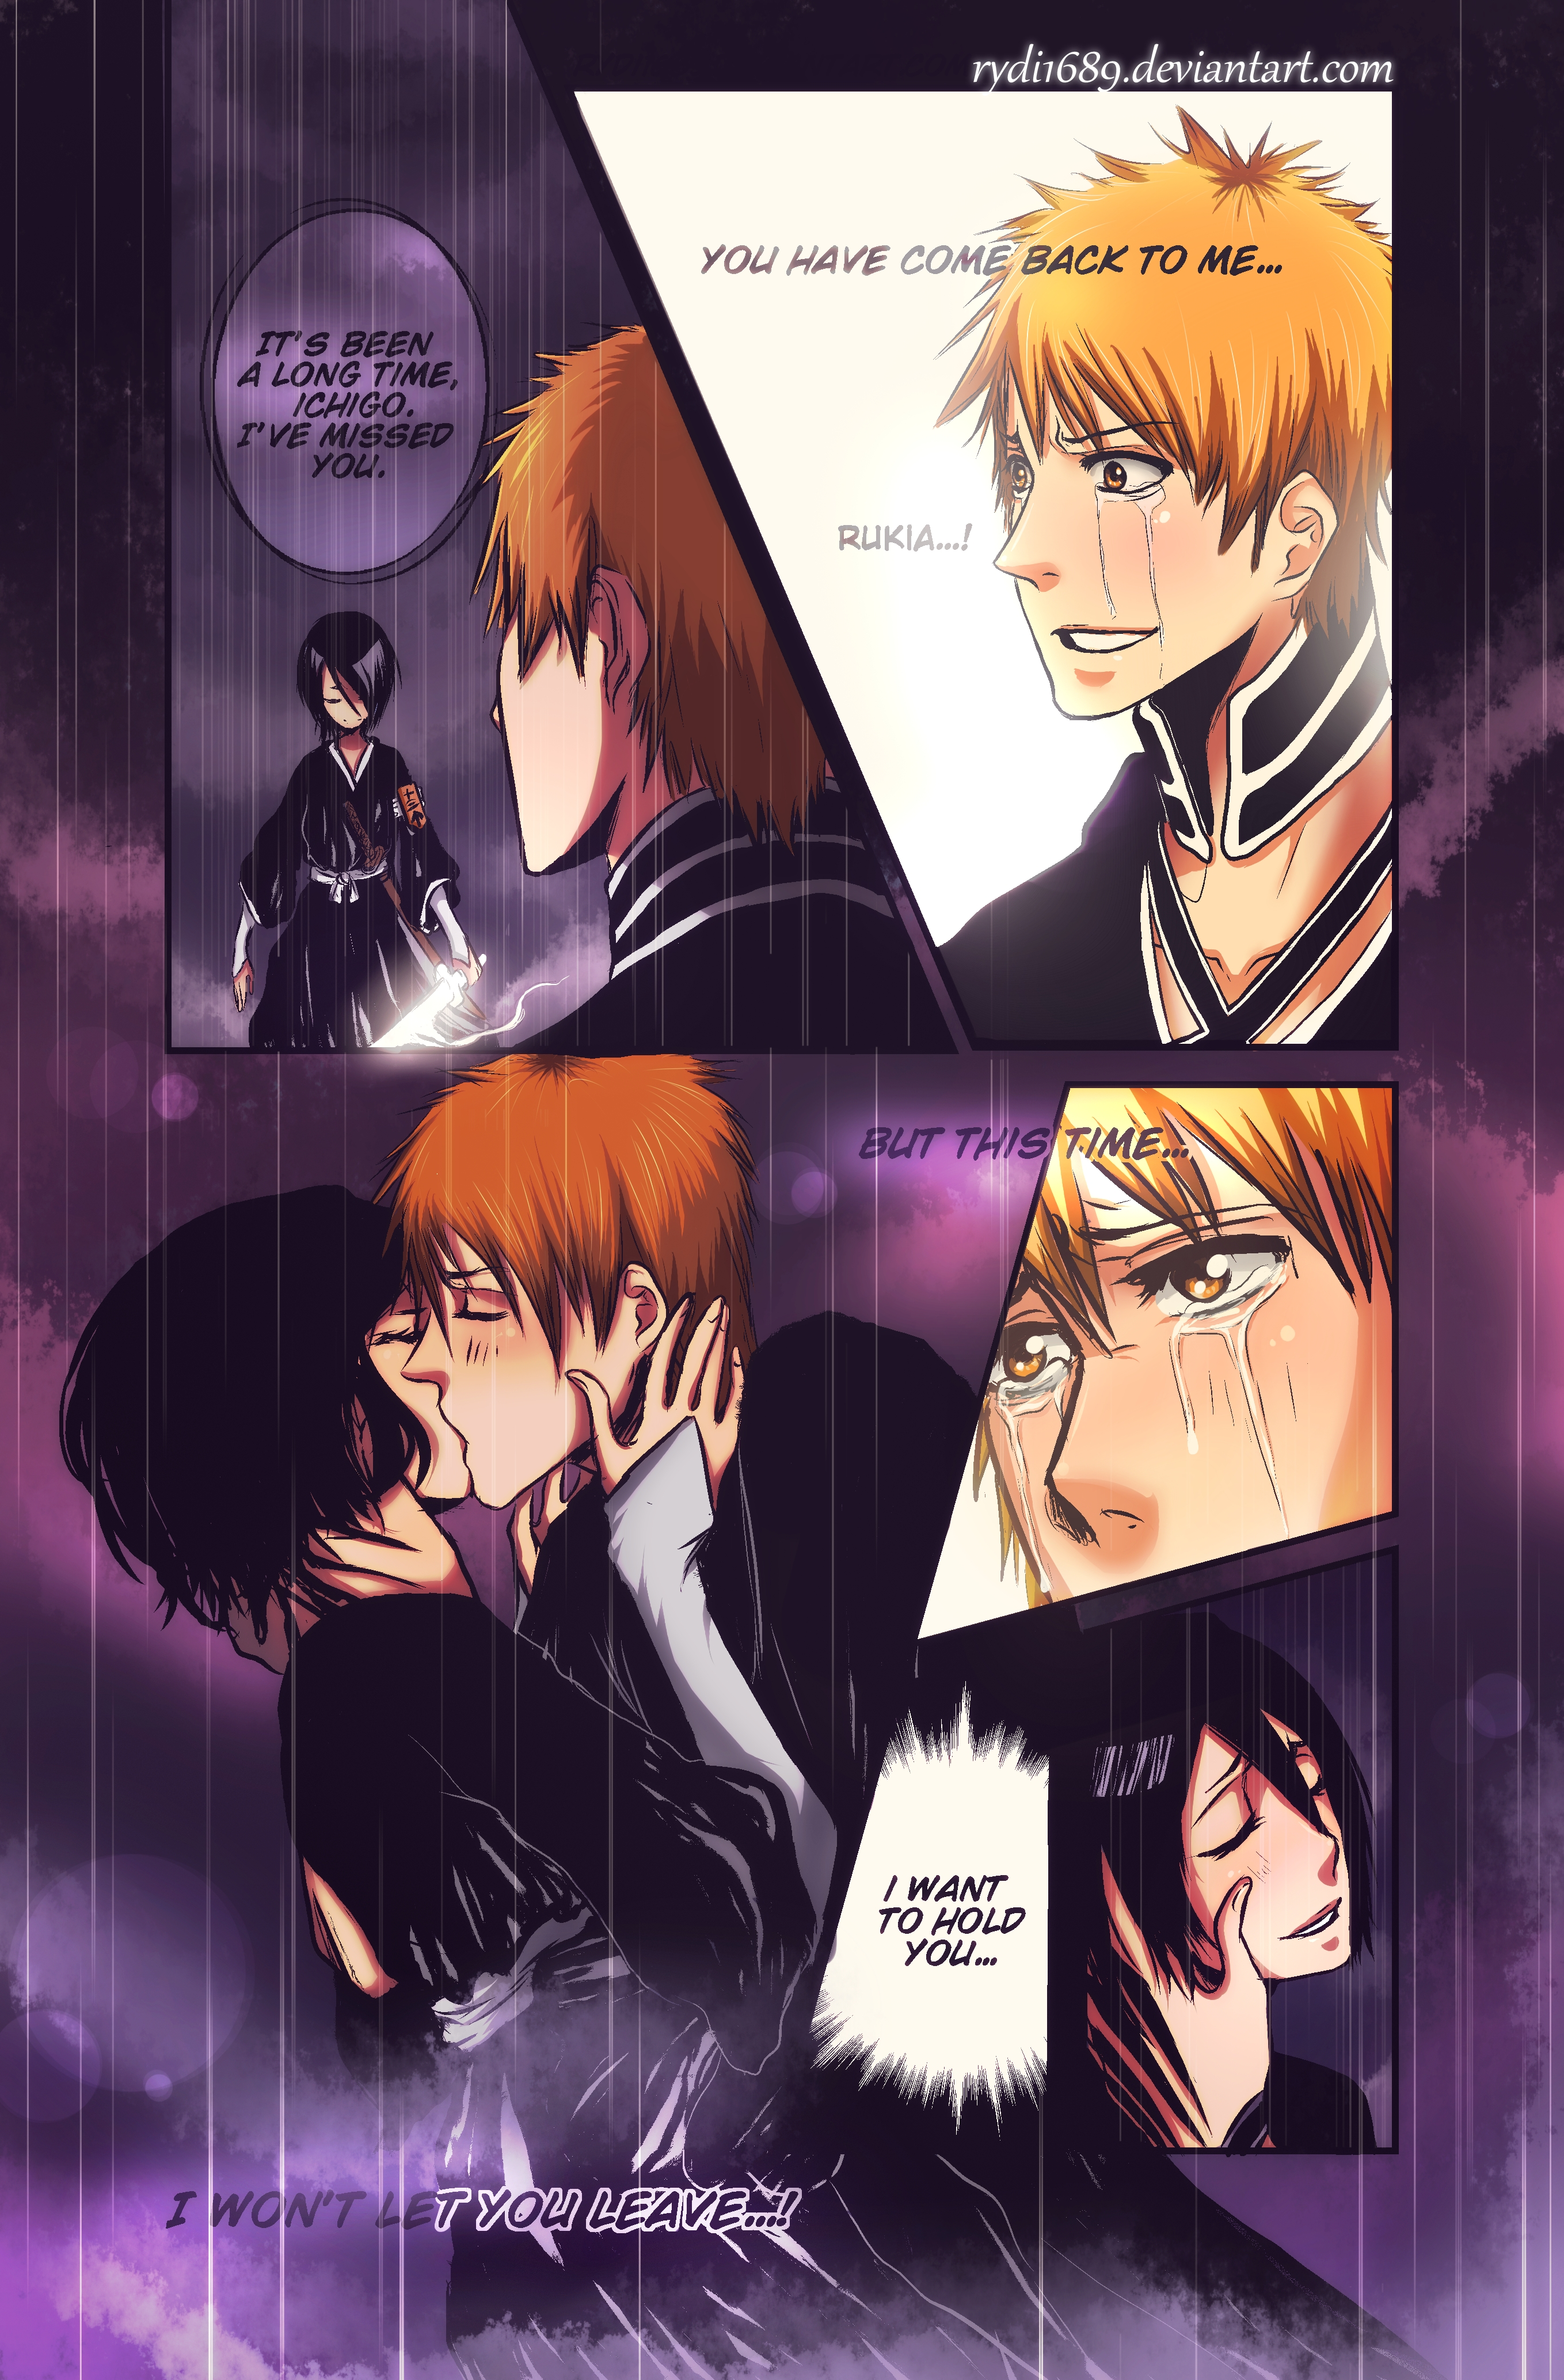 ichigo and rukia kiss - photo #31